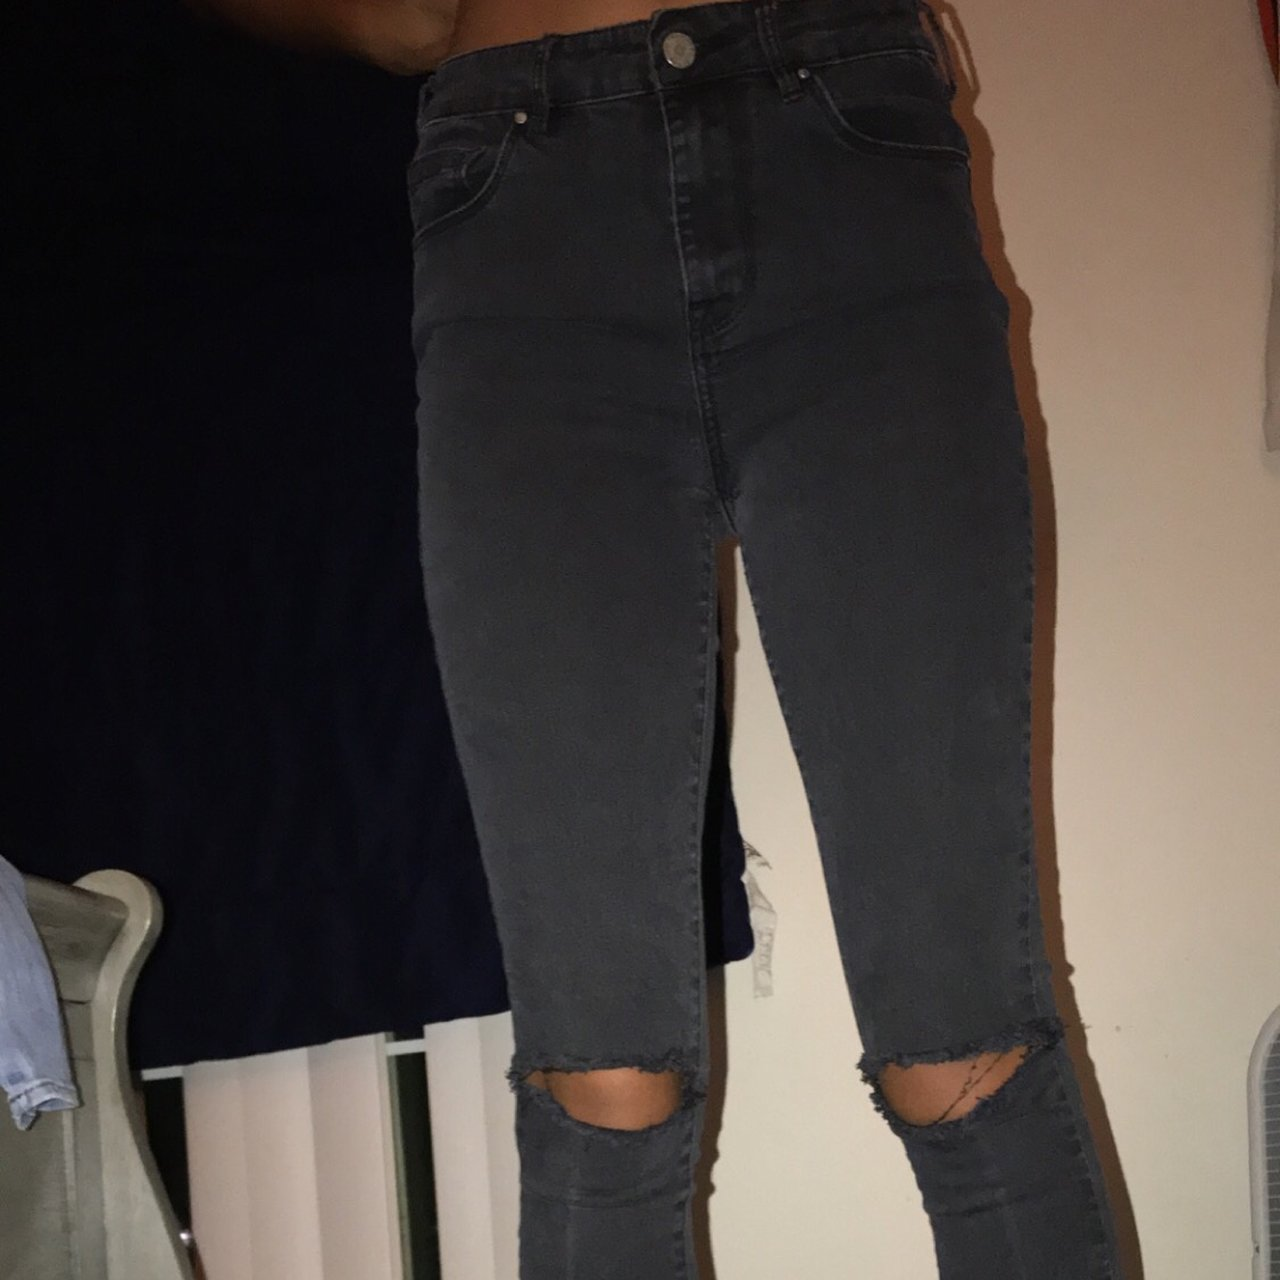 Faded black jeans with knee holes from pacsun!! Size 27 - Depop 2e5de3dd9a51